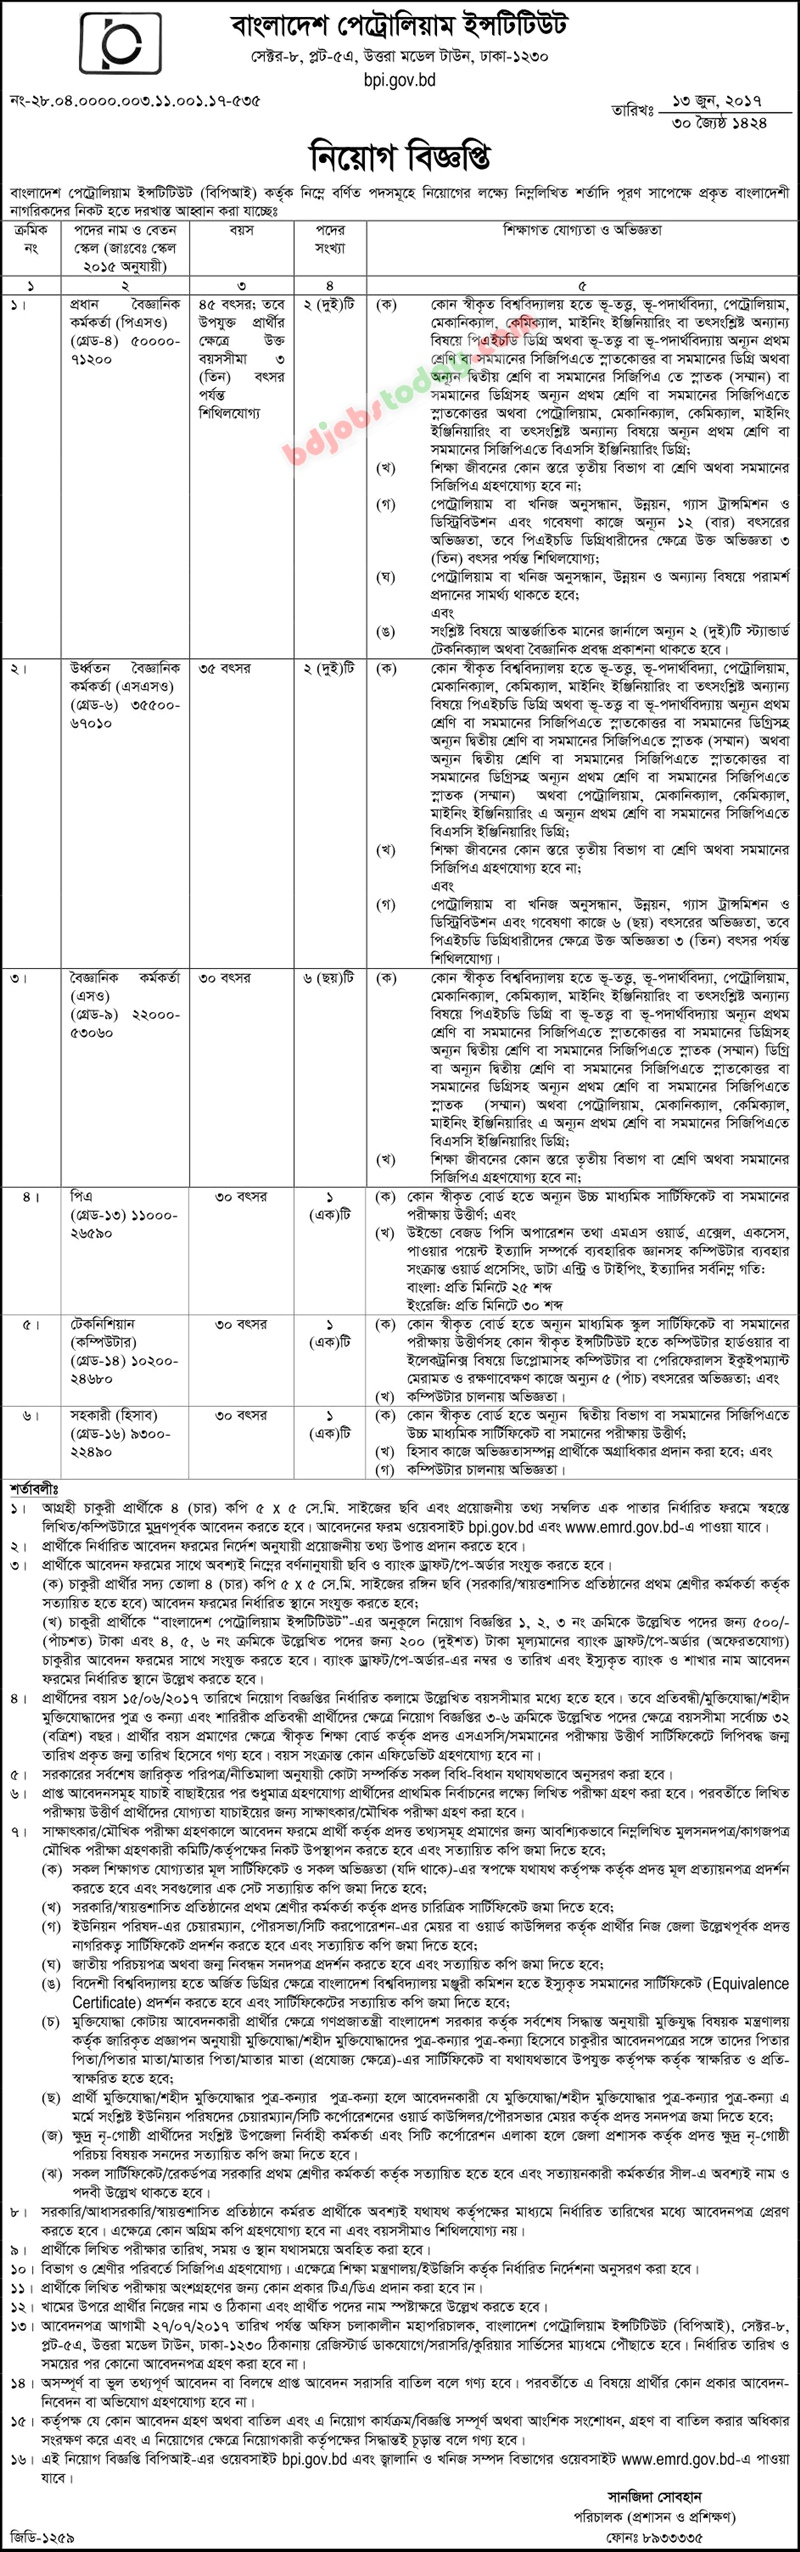 Bangladesh Petroleum Institute (BPI) jobs